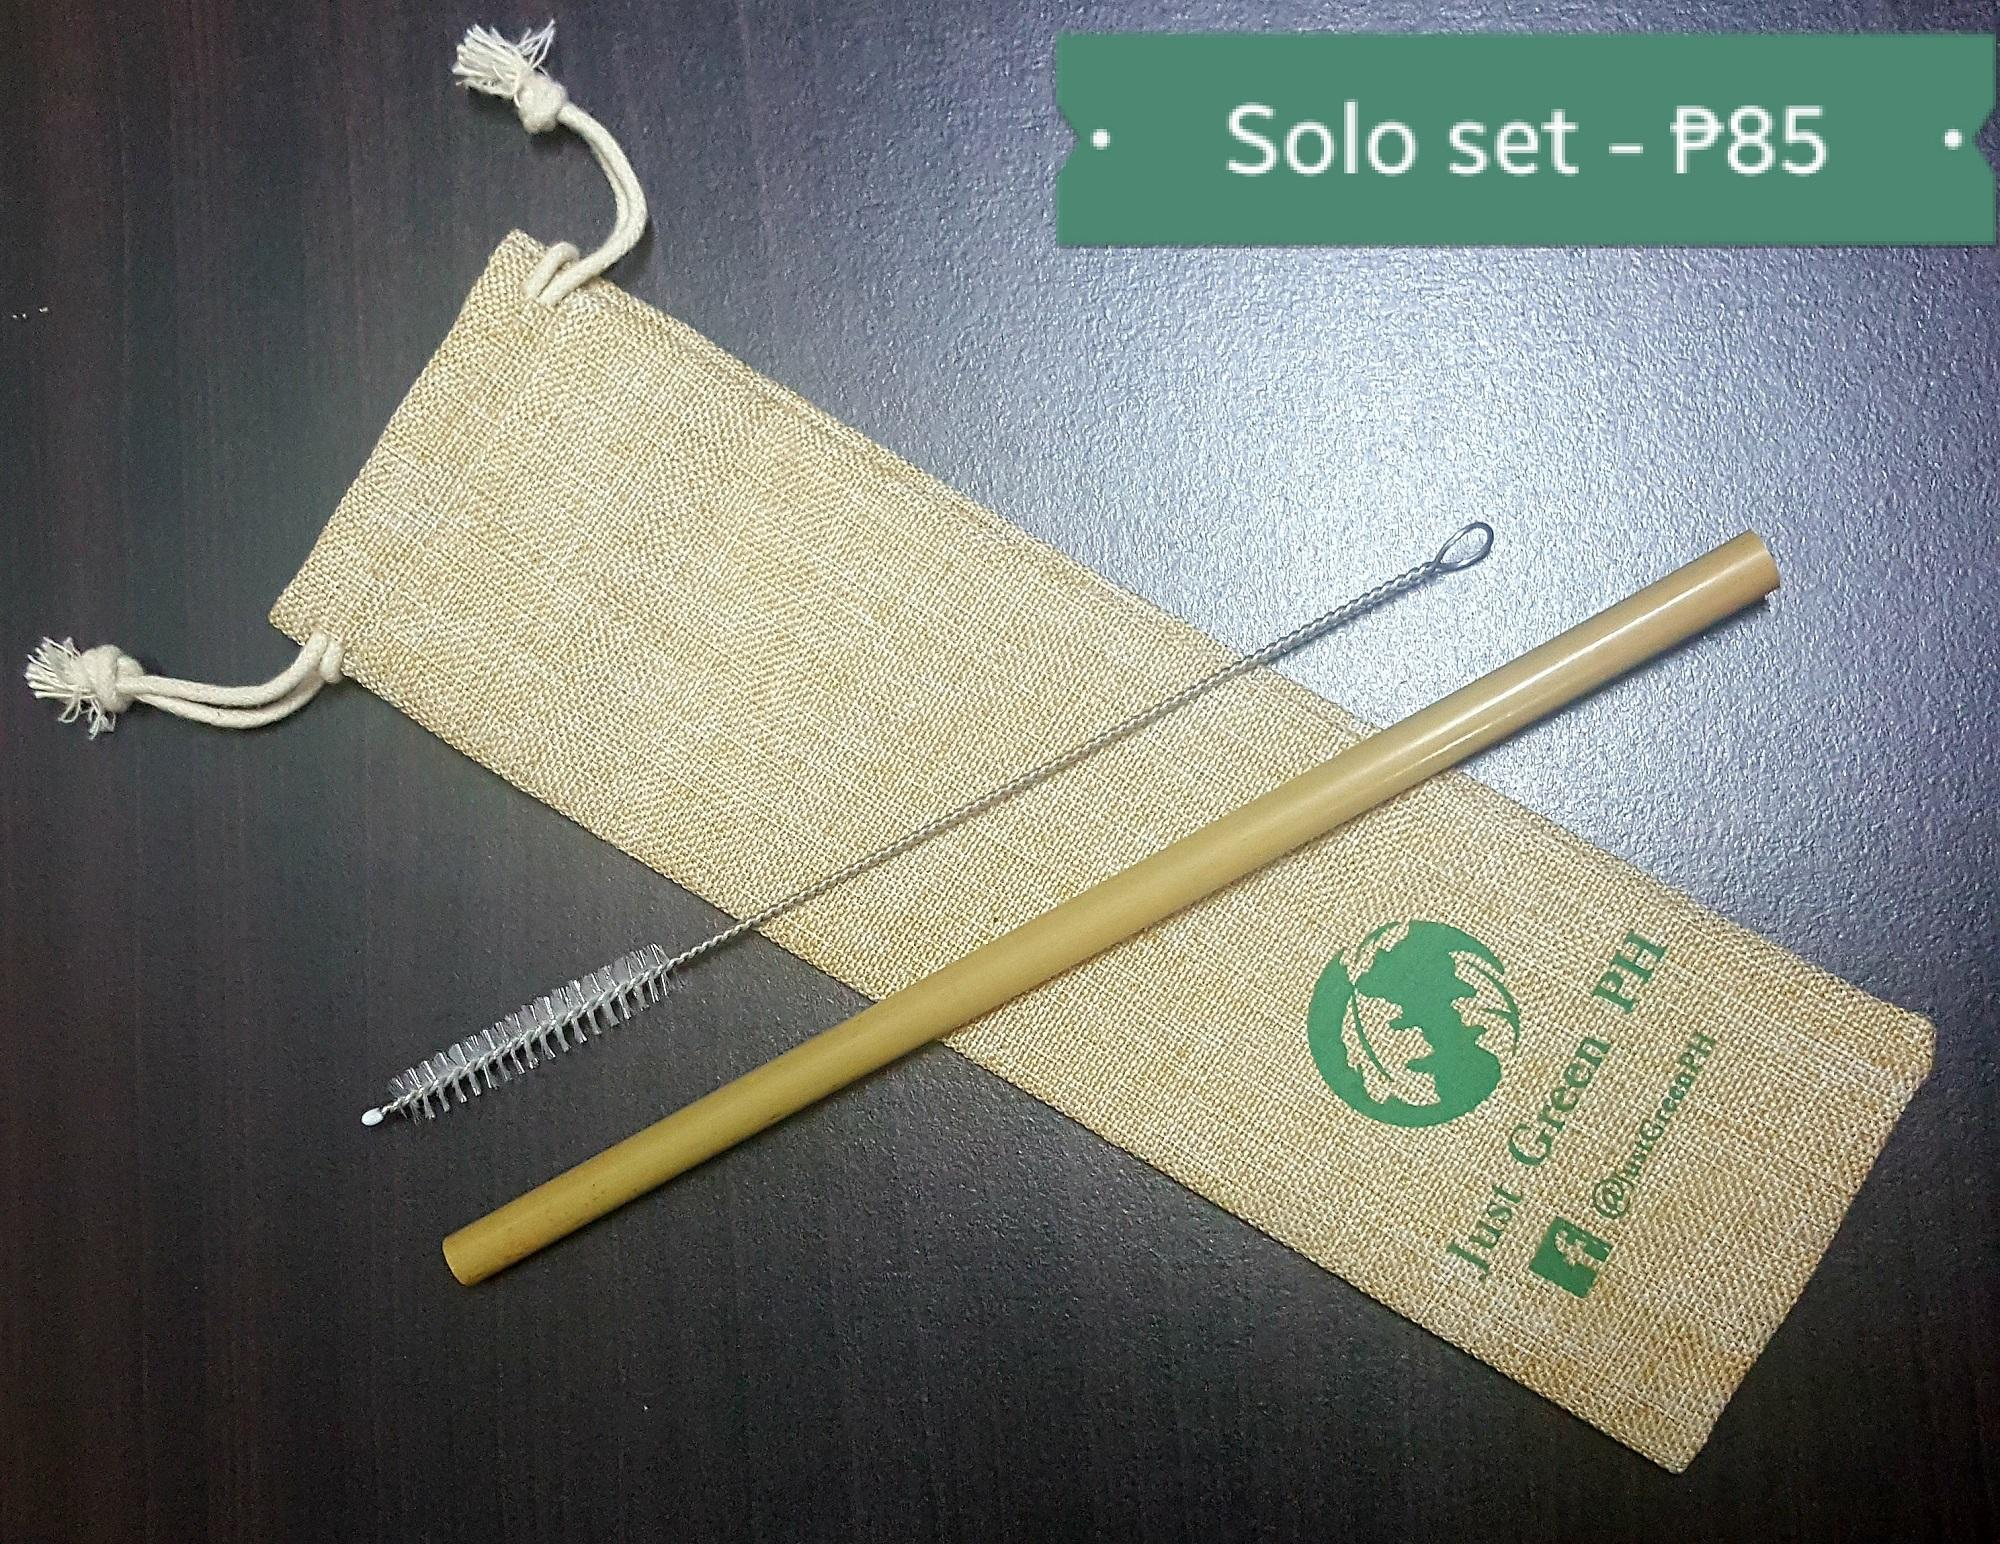 Just Green PH / Pack of 10 Bamboo Straws with 2 Brushes / Pack of 4